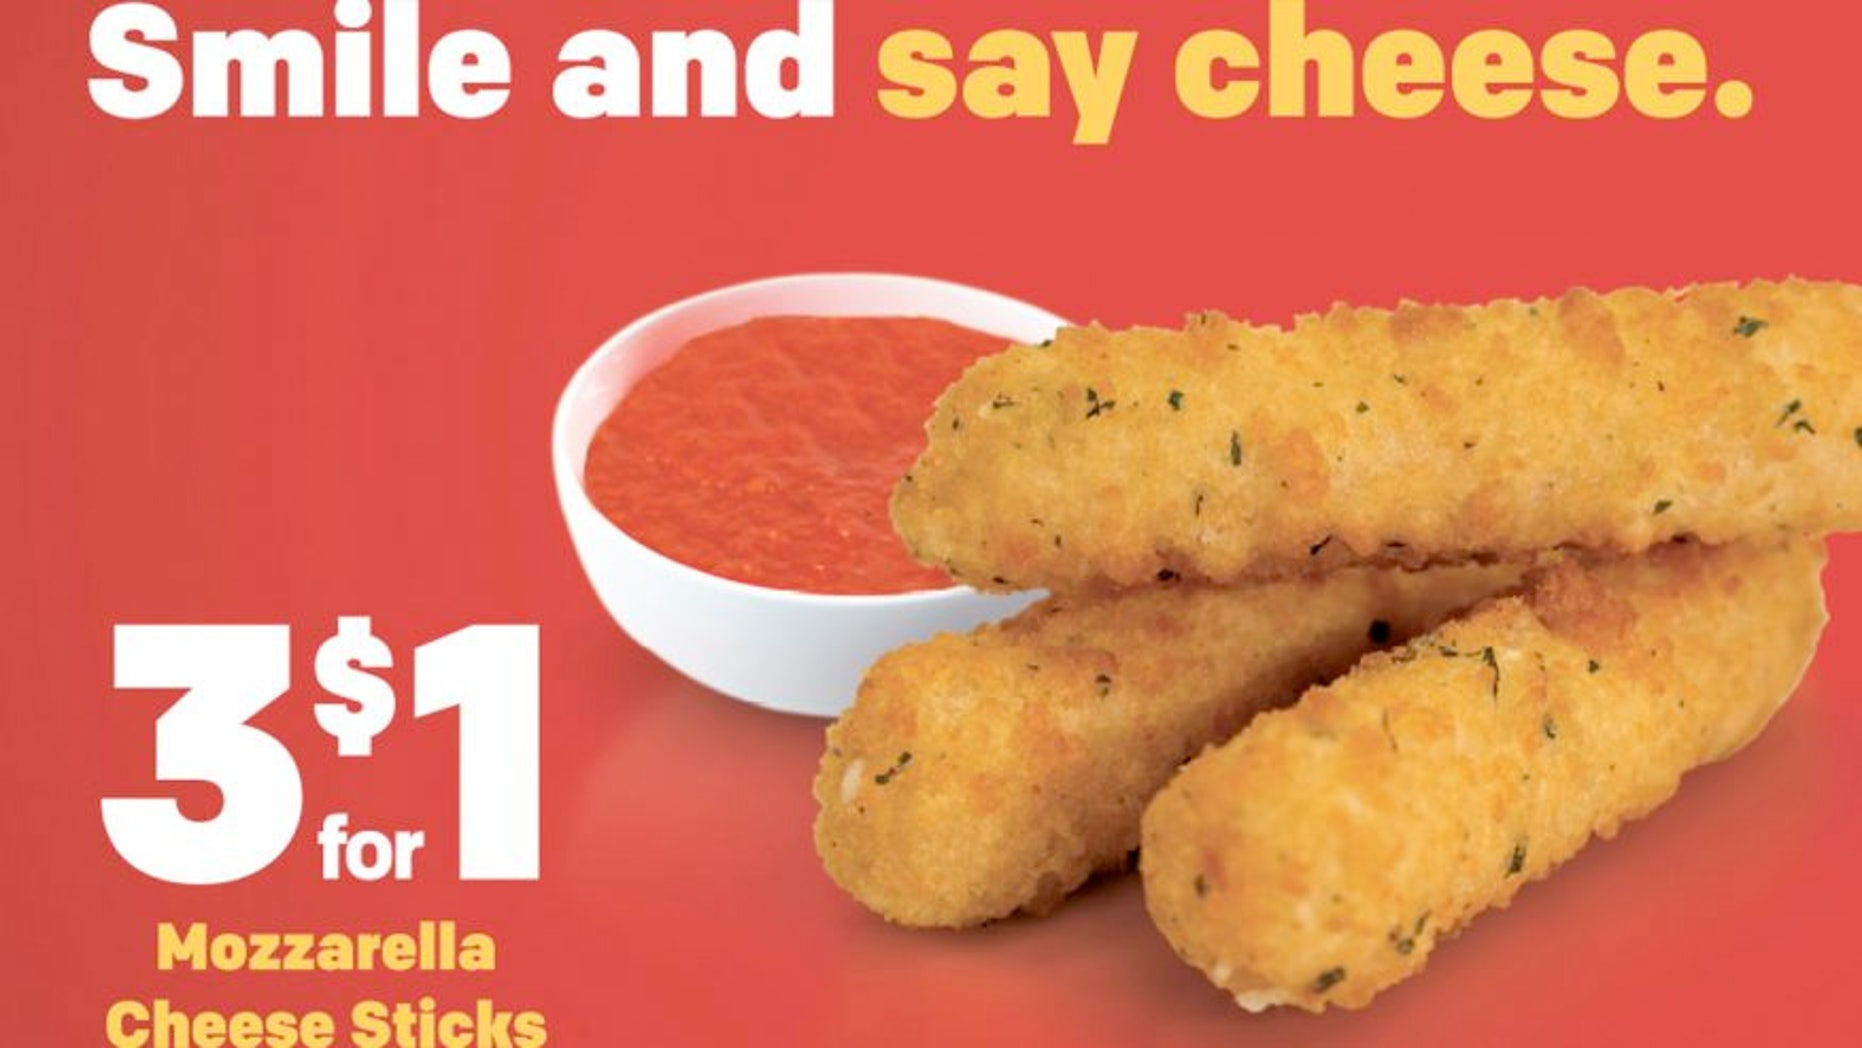 """The company says the sticks are """"made with 100% real and melty mozzarella cheese."""""""